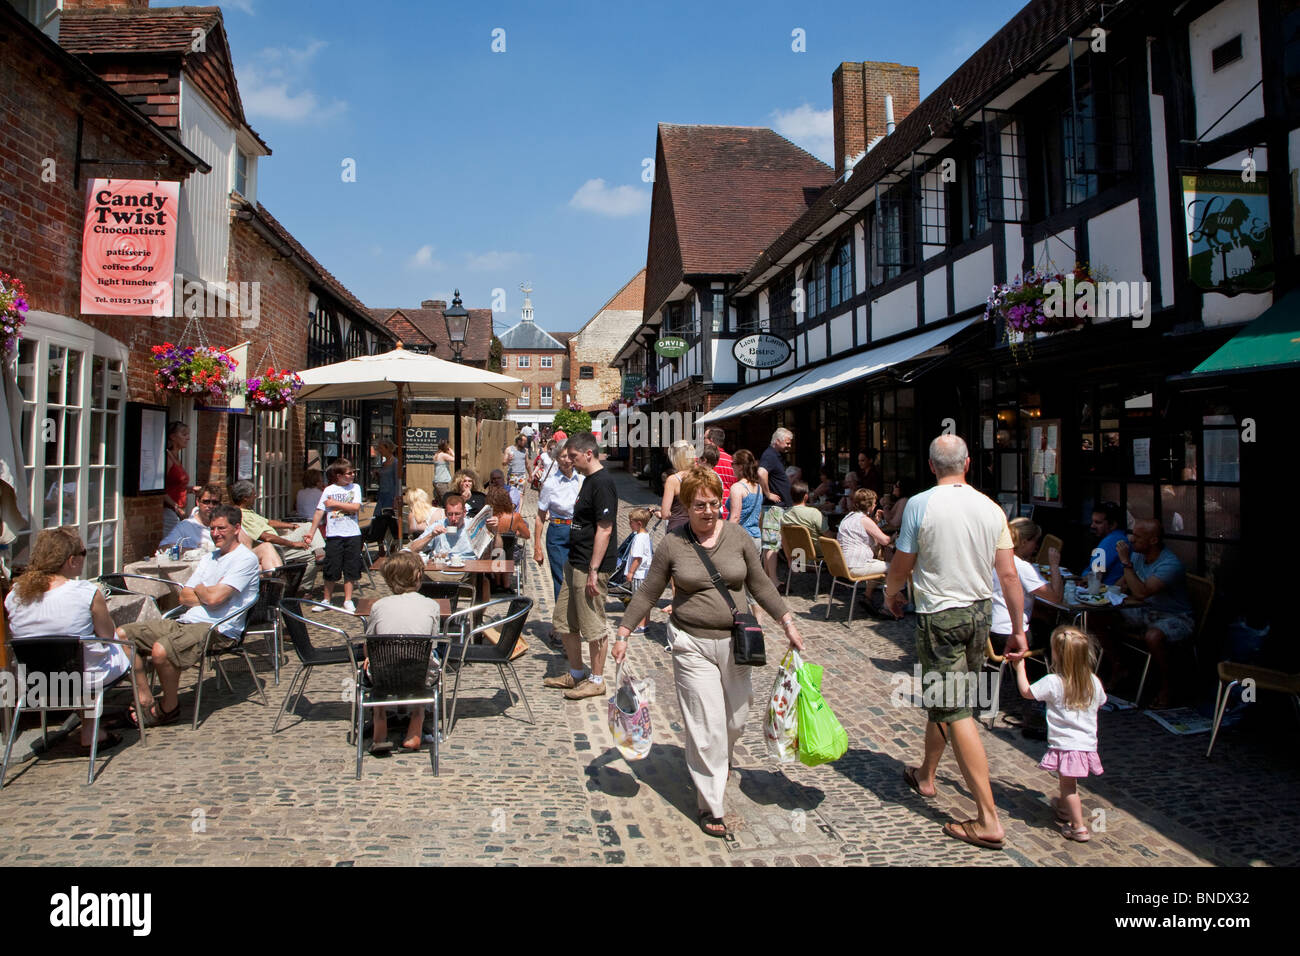 Lion and Lamb Yard, Farnham Surrey - Stock Image